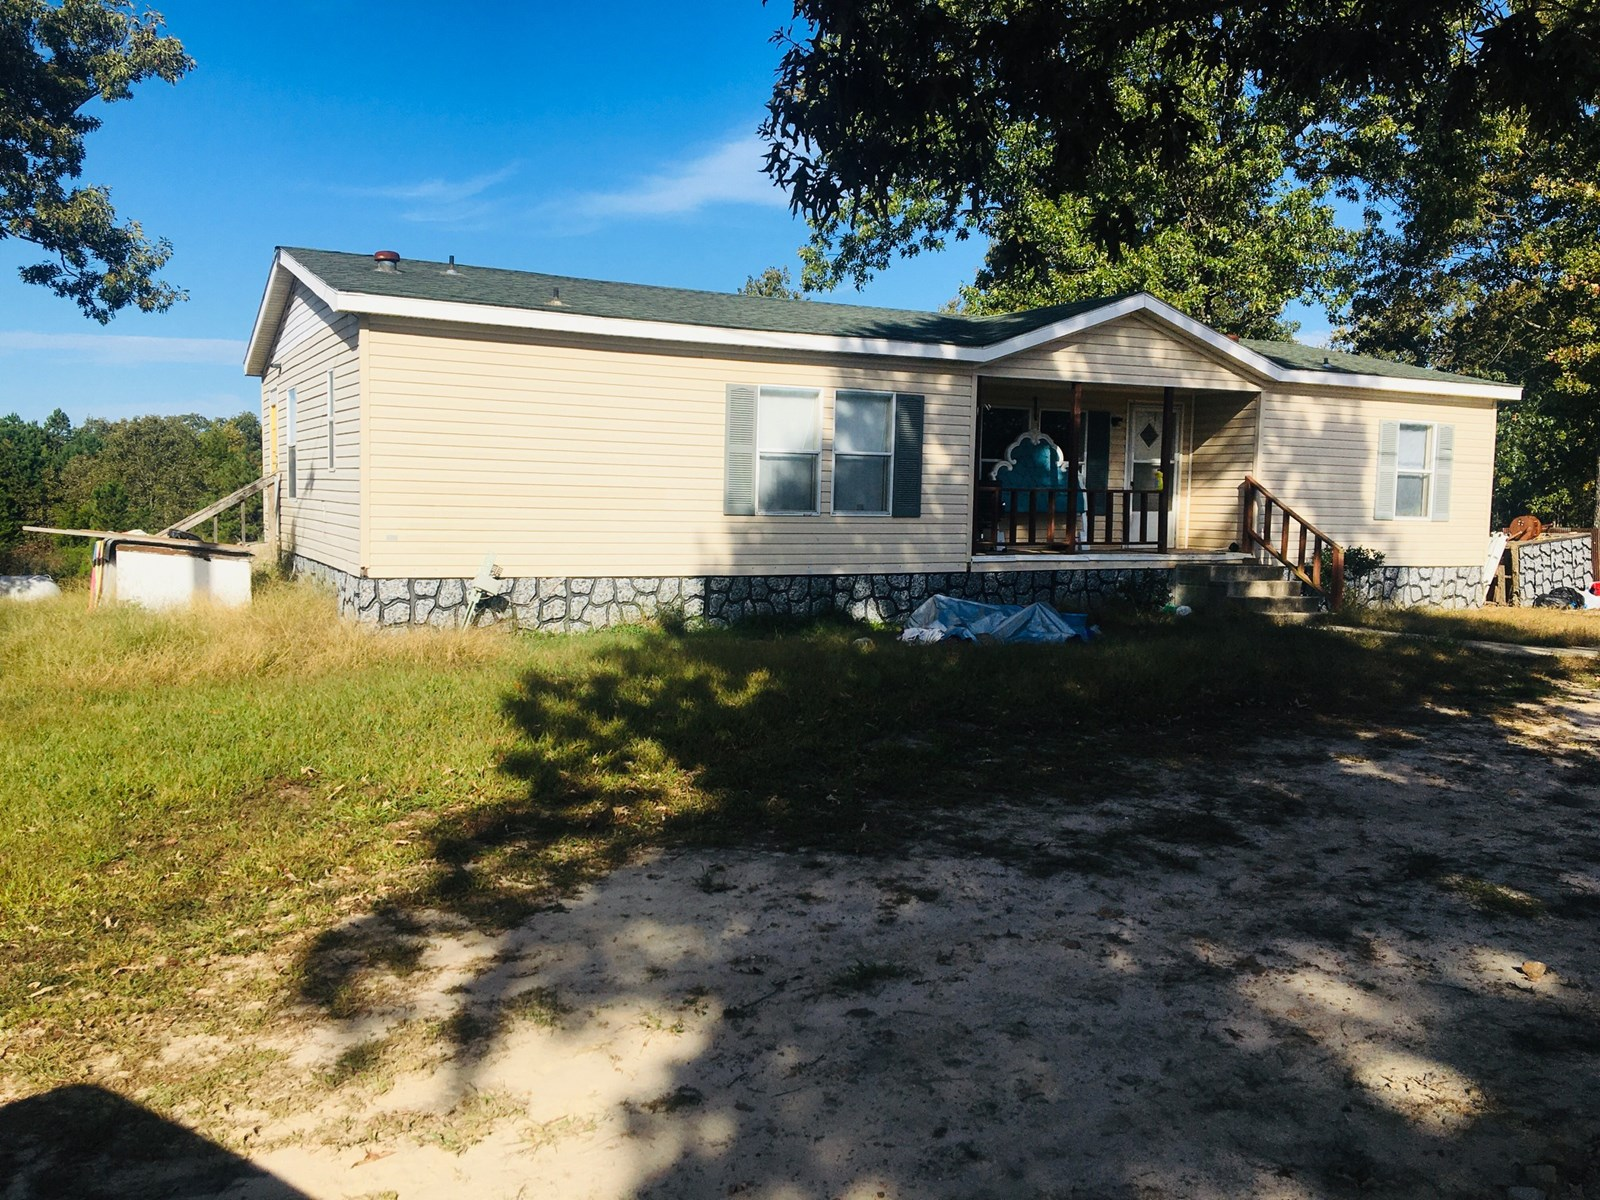 3 BED 2 BATH MANUFACTURED HOME ON 10 ACRES IN GOOD LOCATION